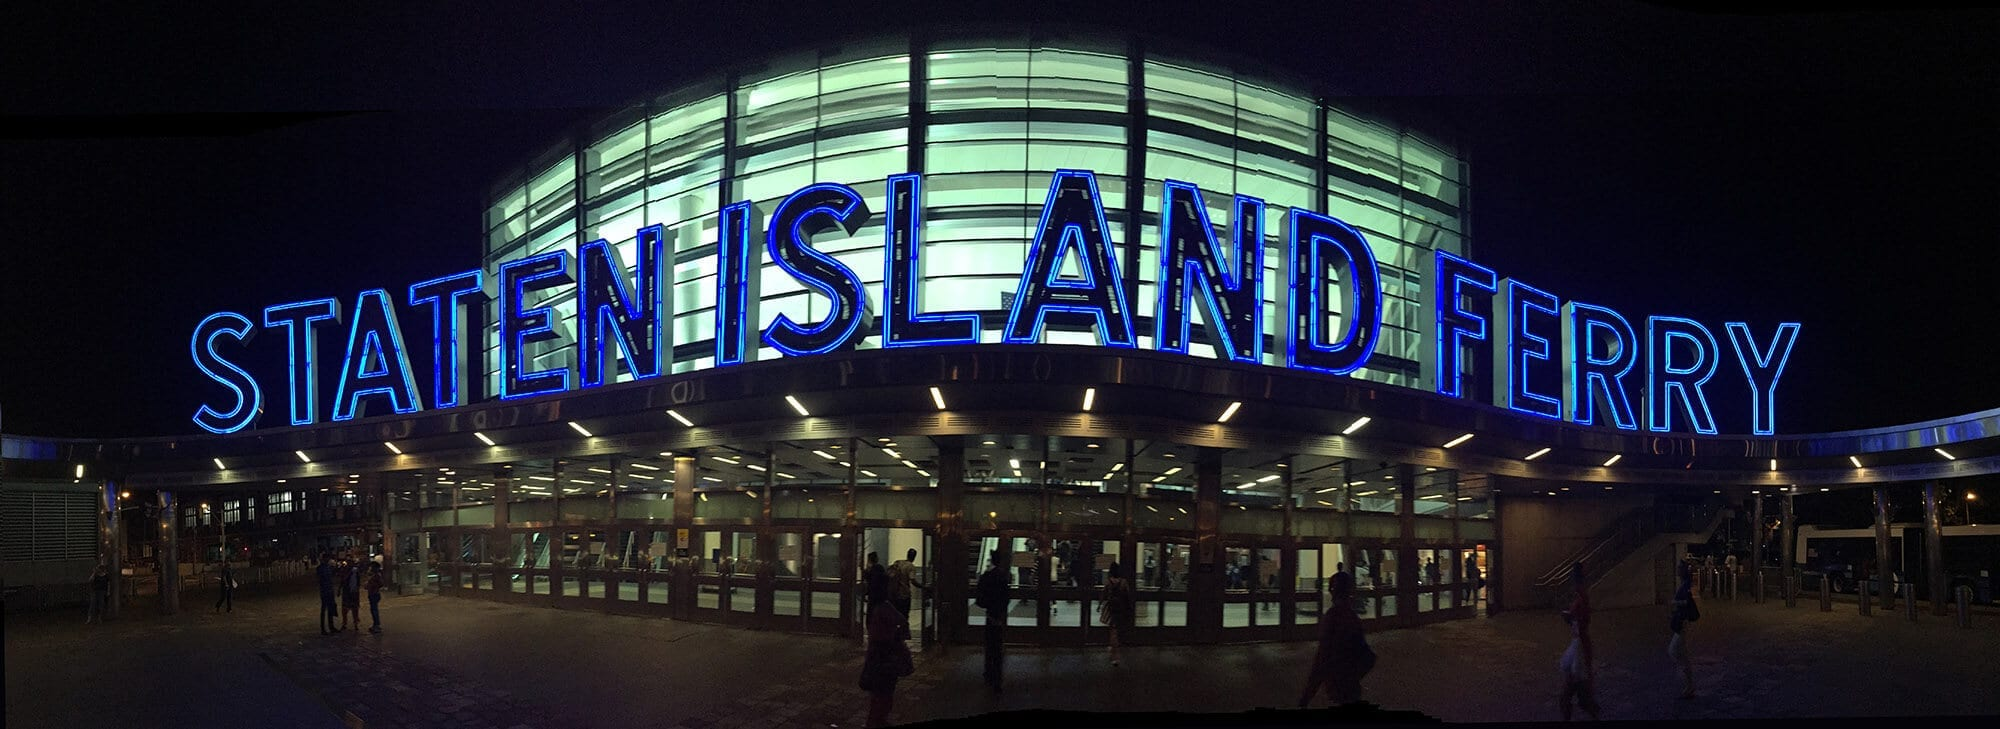 Outlet New Jersey >> Hudson River Services and The Staten Island Ferry | AHRC New York City